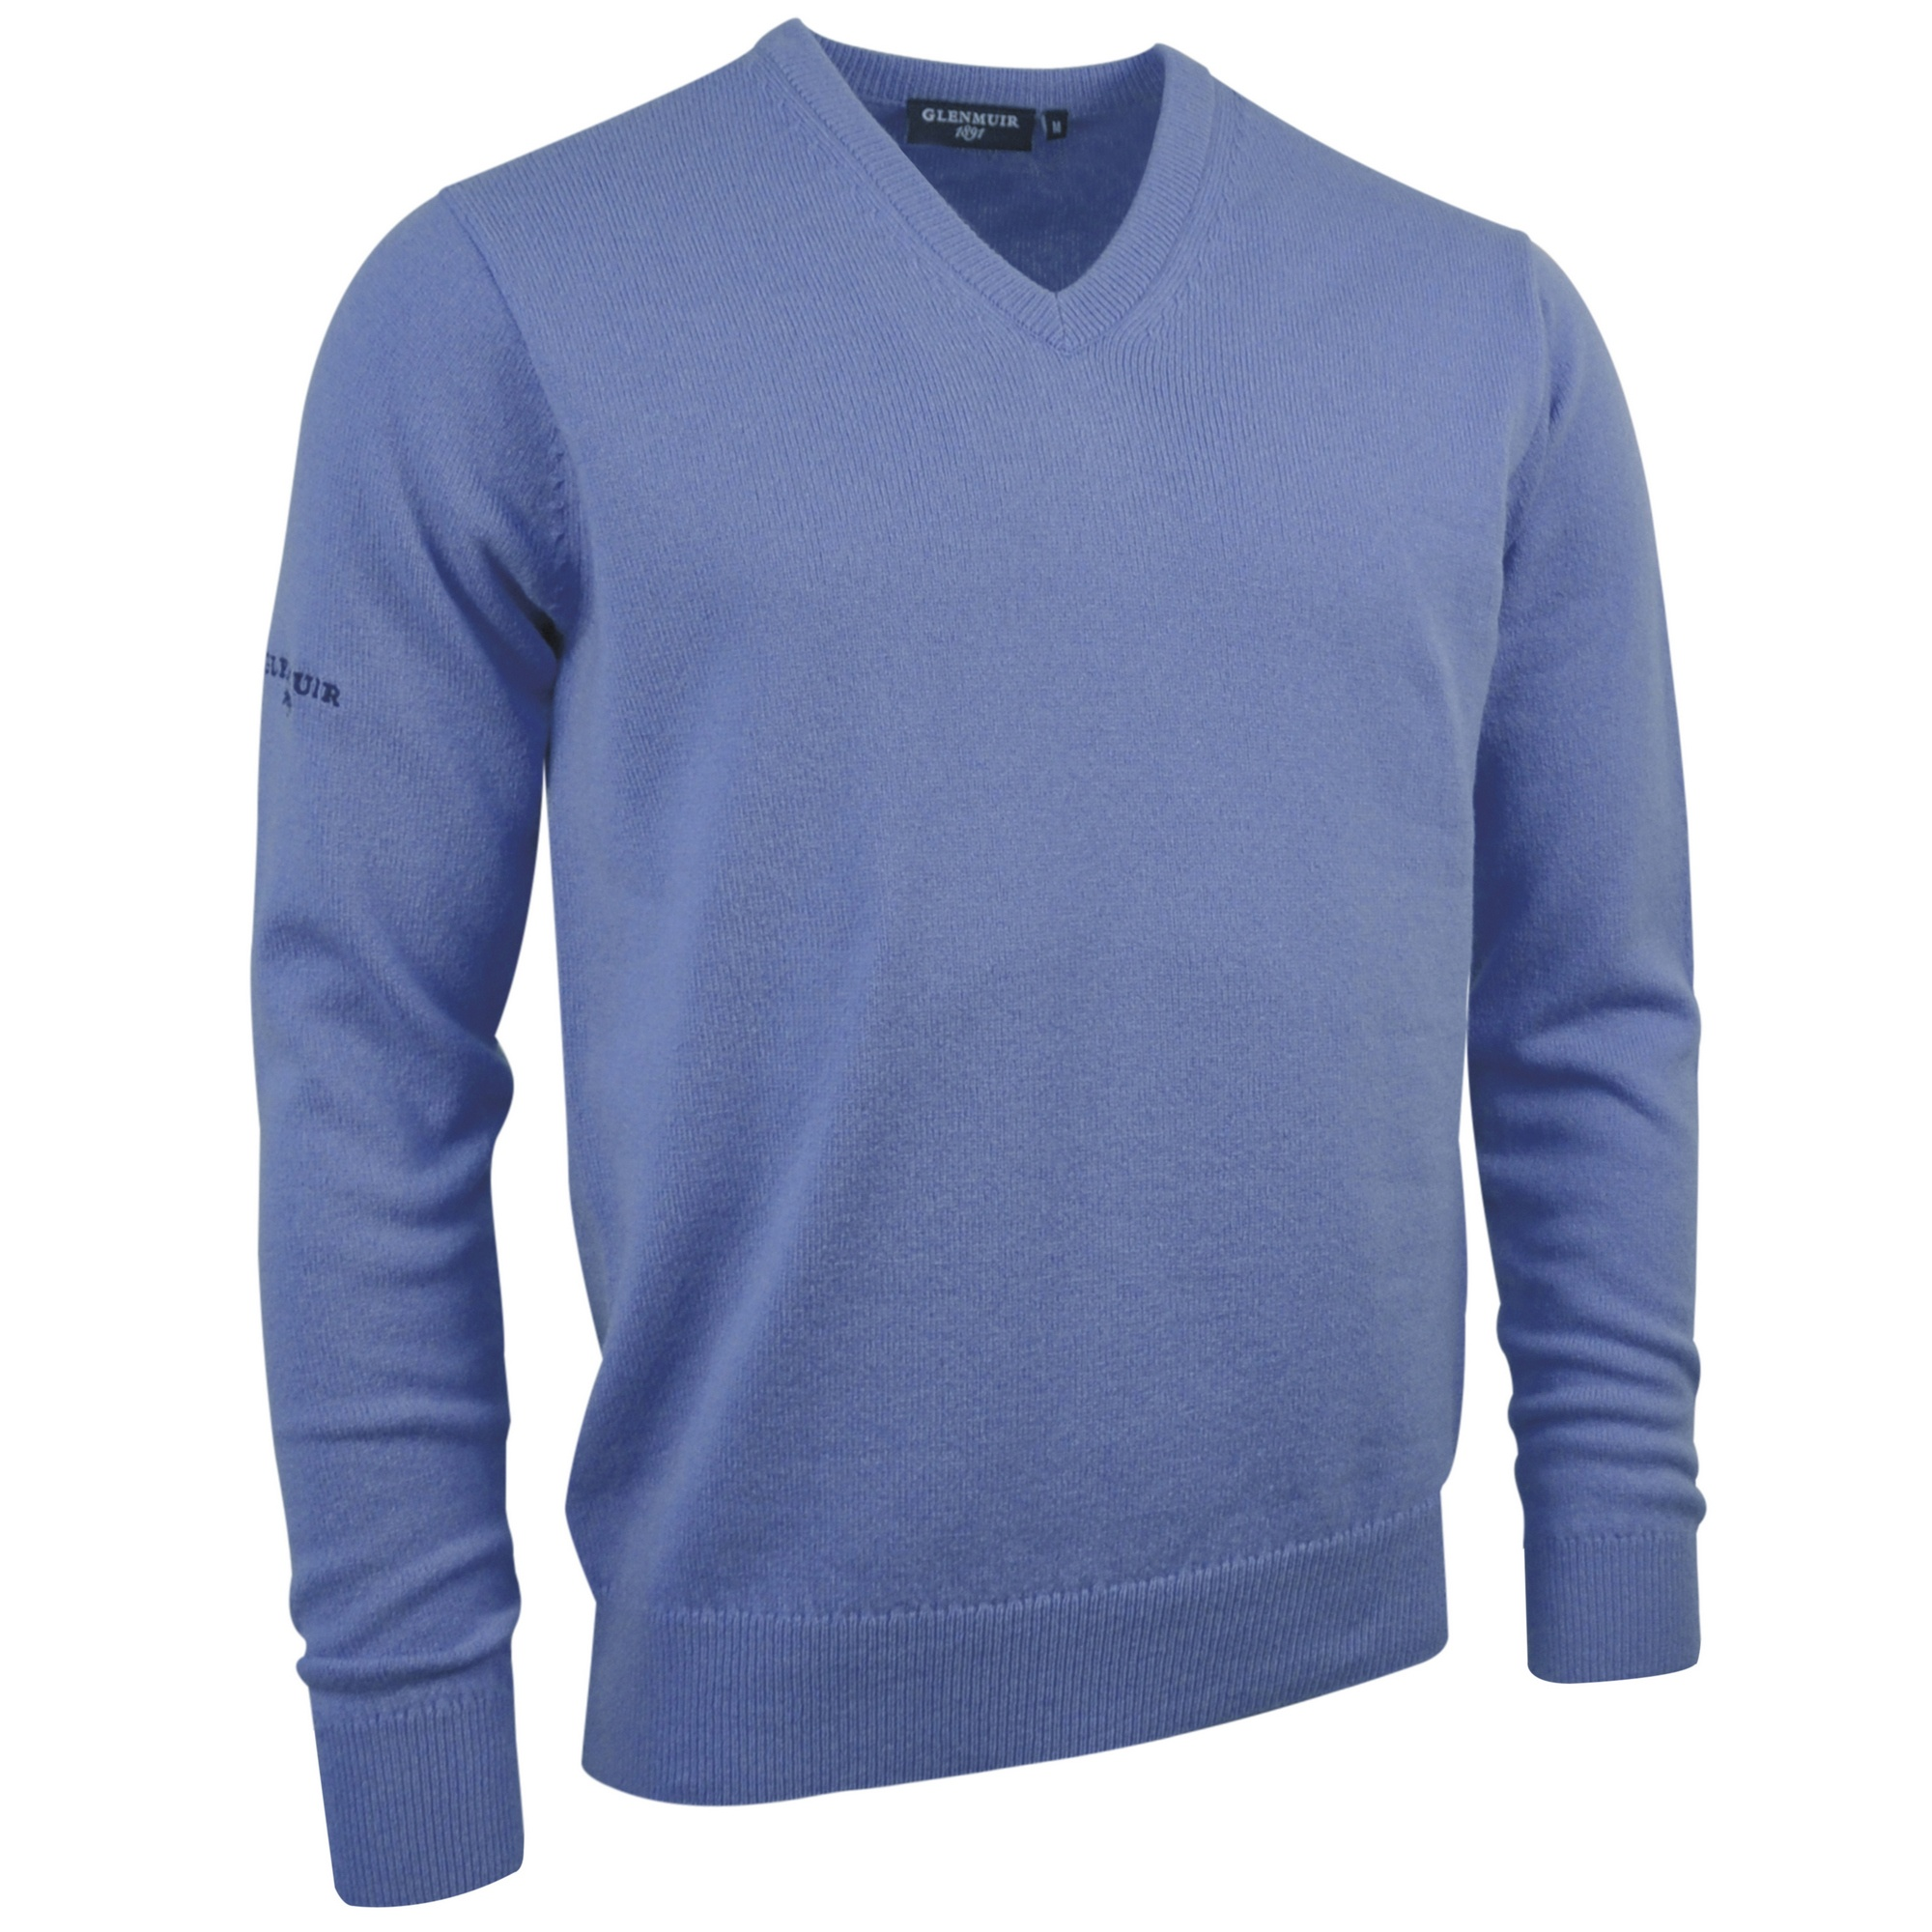 Glenmuir-Lomond-V-Neck-Lambswool-Sweater-Knitwear-RW515